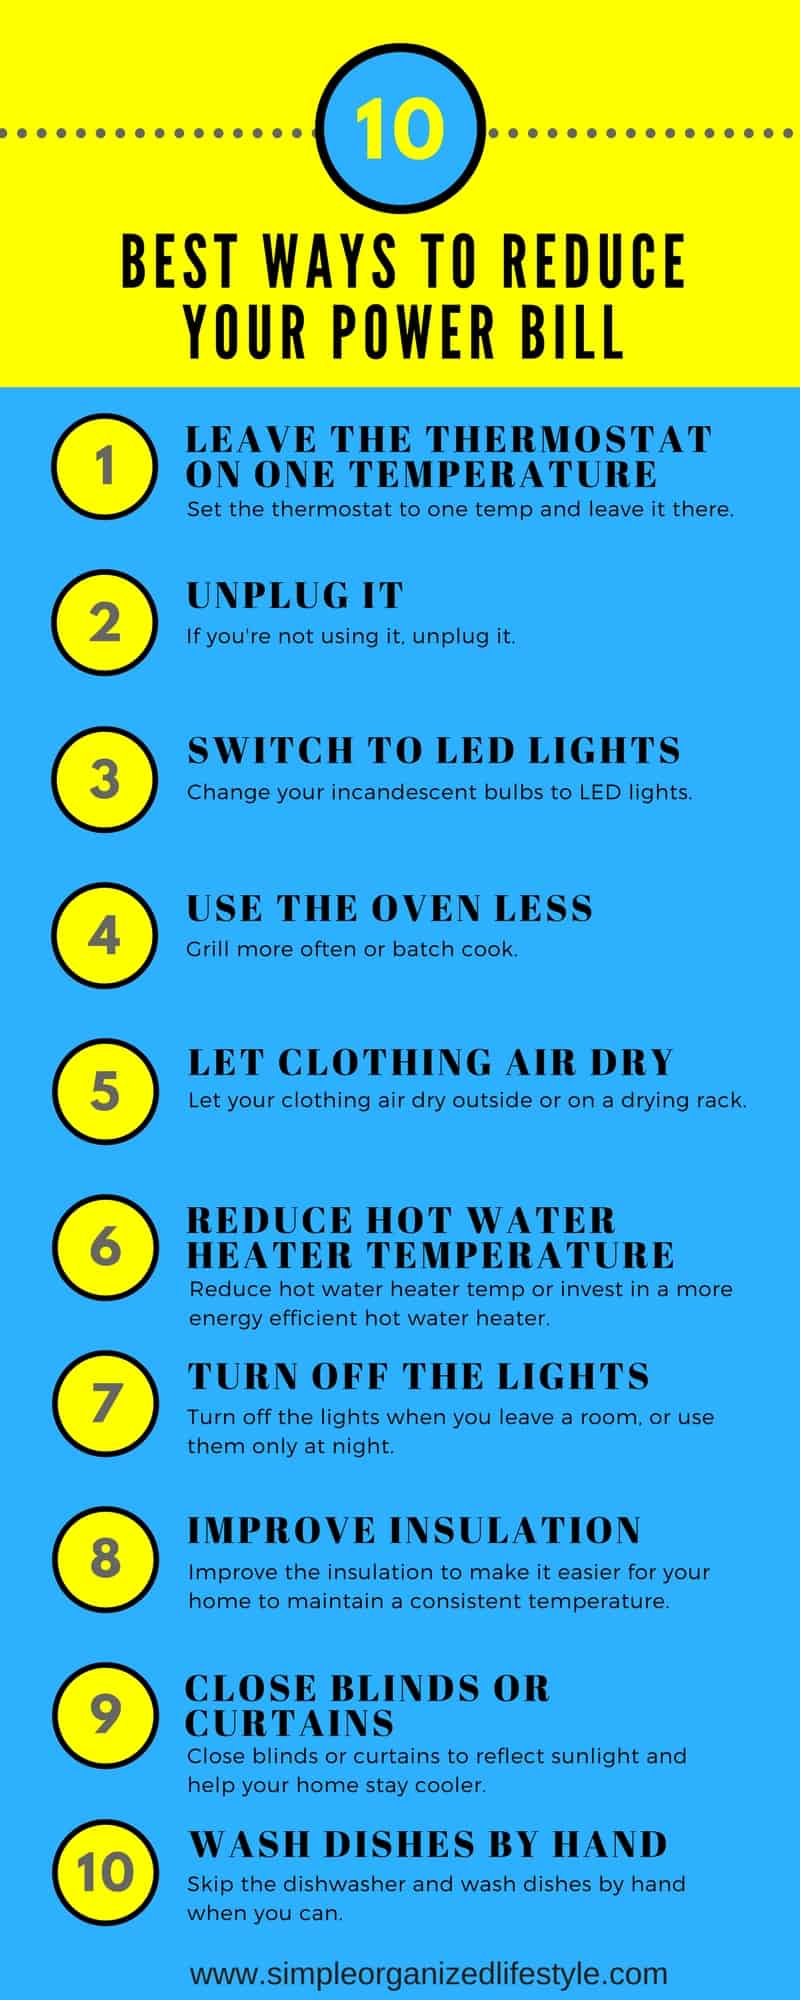 10 Best Ways to Reduce Your Power Bill